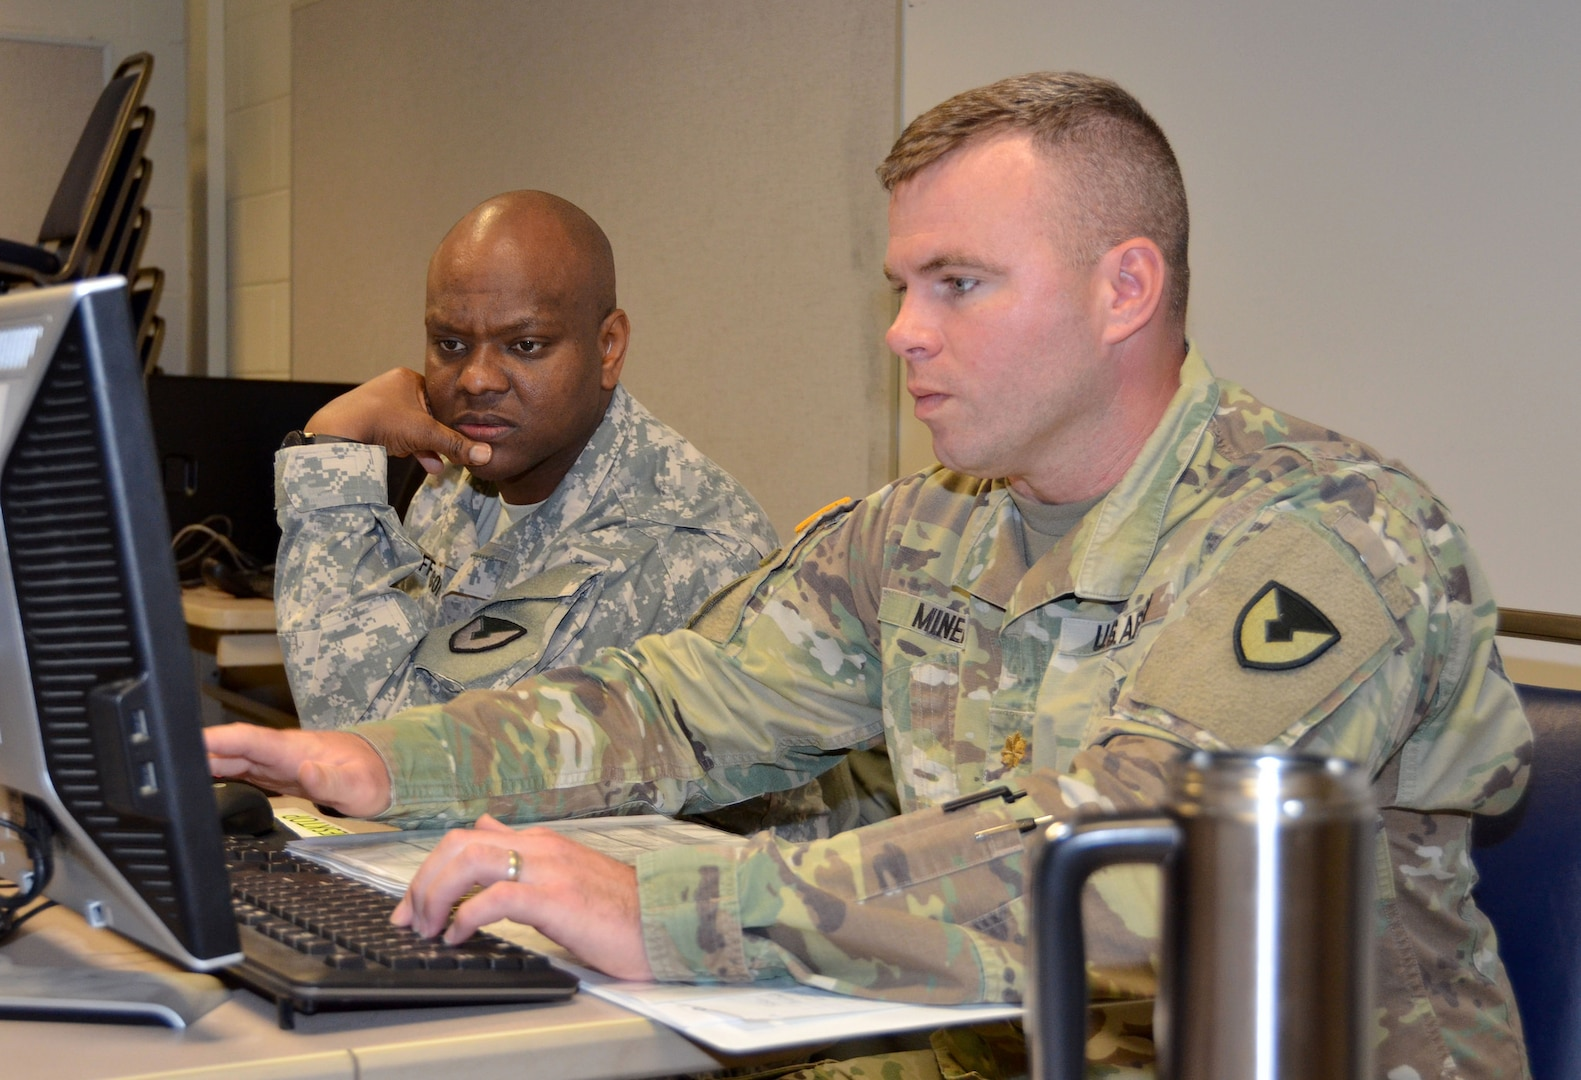 Maj. Keith Miner (right) provides contracting support as Sgt. 1st Class La Chad Jefferson (left) looks on during a humanitarian assistance disaster relief exercise Feb. 8 at Joint Base San Antonio-Camp Bullis. Miner and Jefferson are contracting officers with the 410th Contracting Support Brigade at JBSA-Fort Sam Houston.